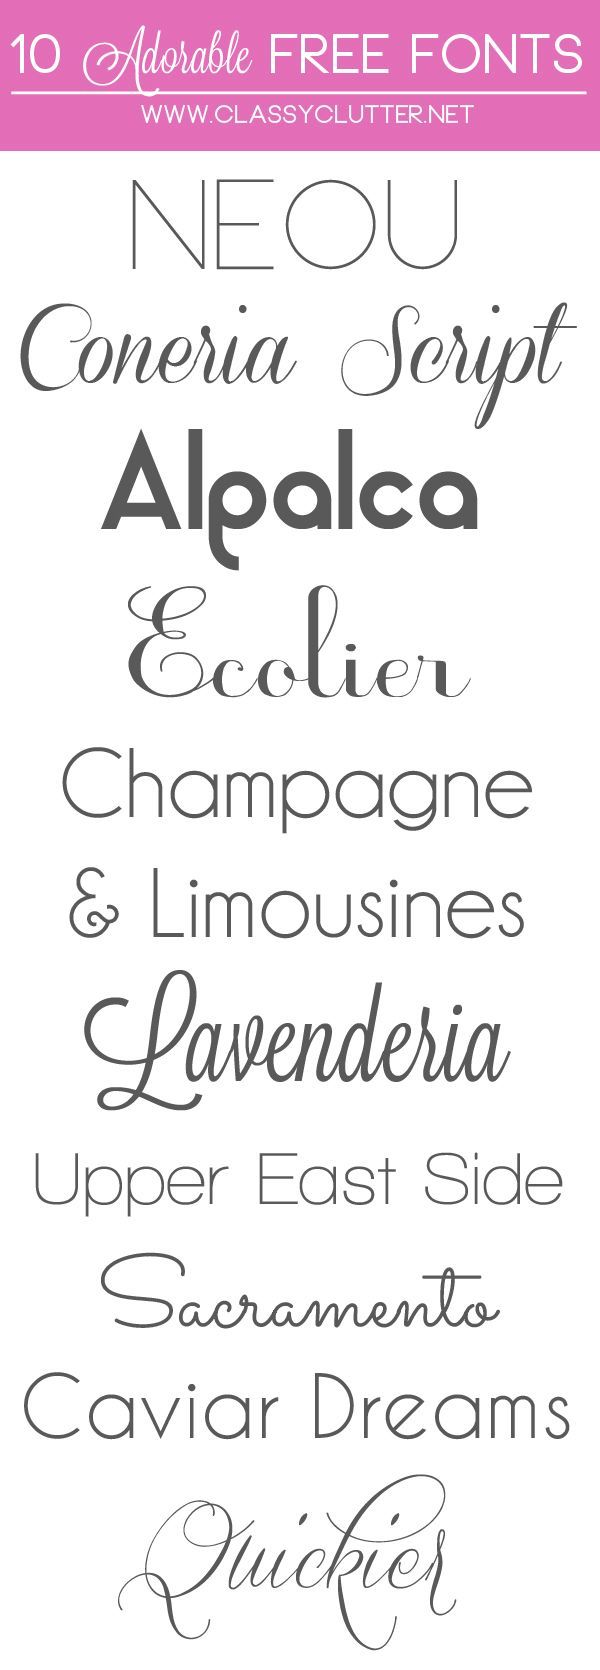 10 Adorable Free Fonts  || ClassyClutter  ~~ {10 free fonts w/ easy download links}